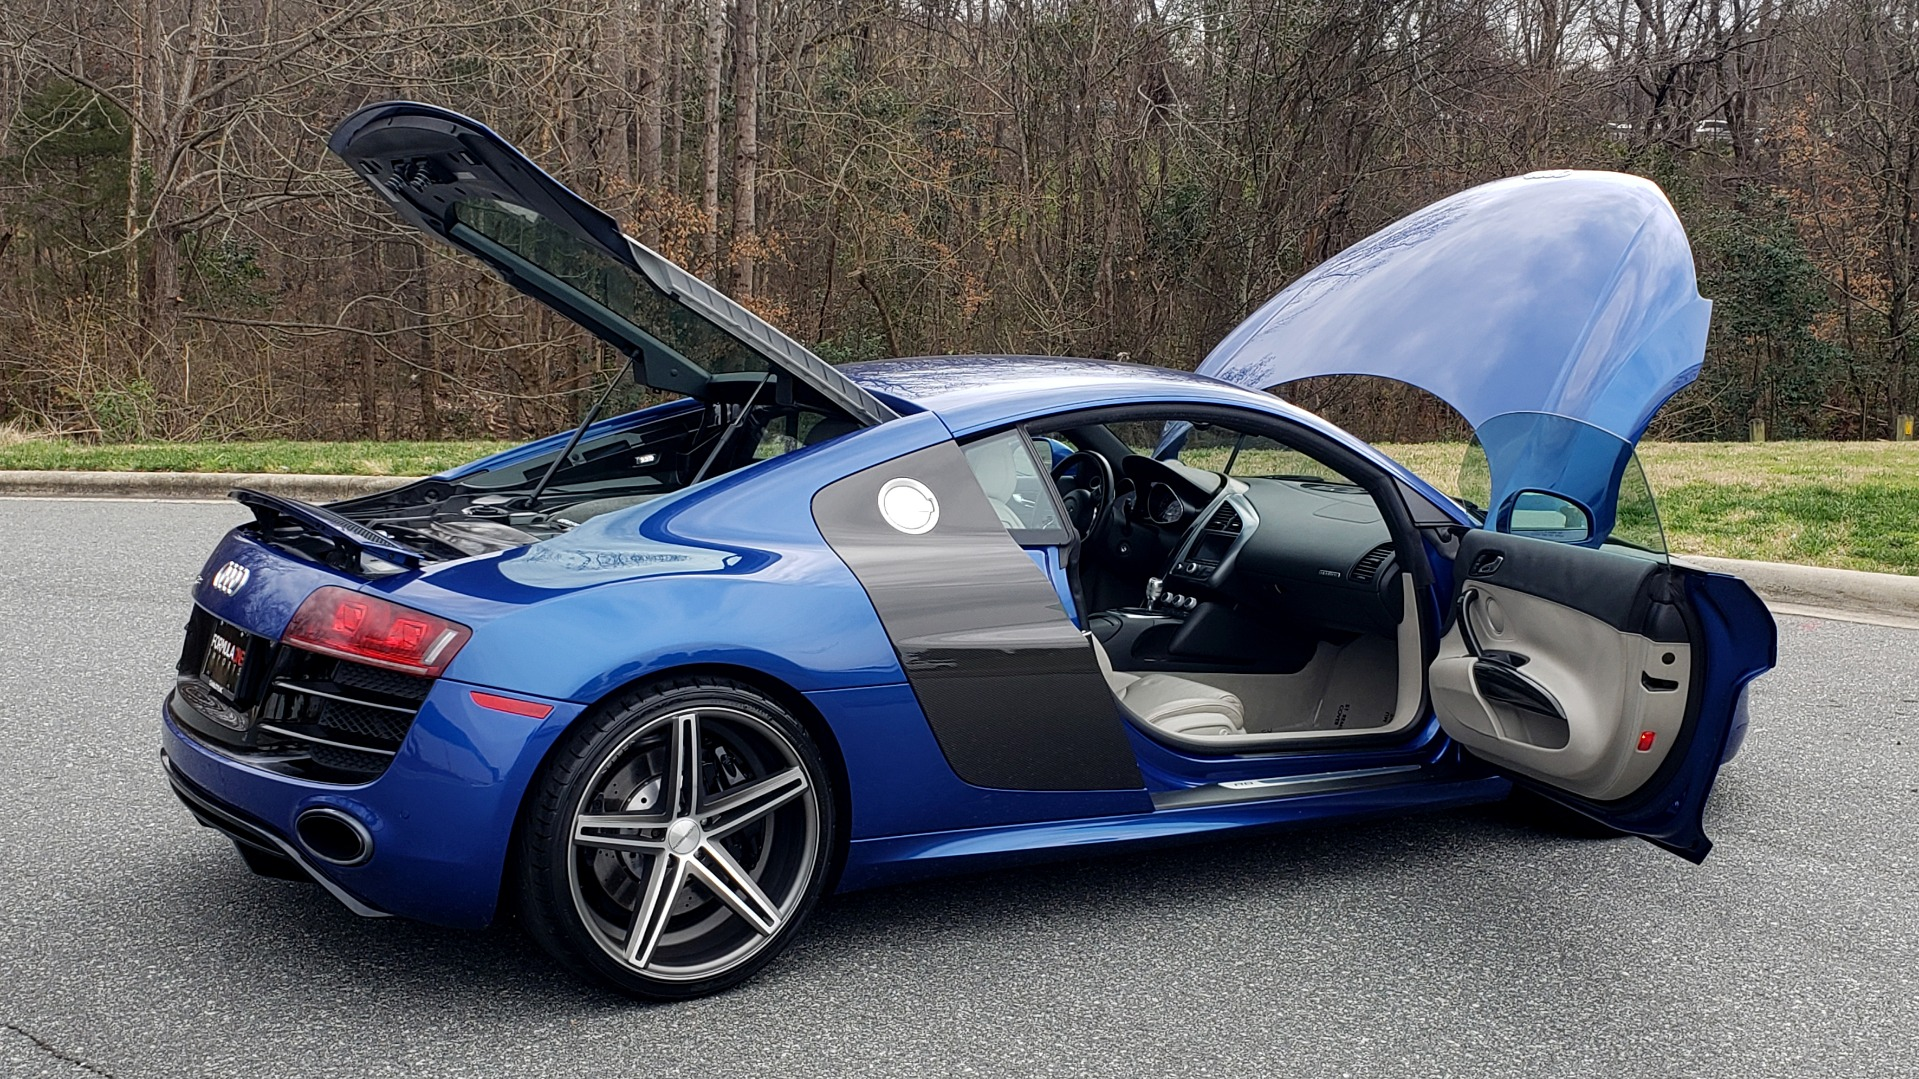 Used 2010 Audi R8 5.2L V10 / AWD / NAV / B&O SND / HTD STS / CUSTOM EXH & WHEELS for sale $78,000 at Formula Imports in Charlotte NC 28227 13